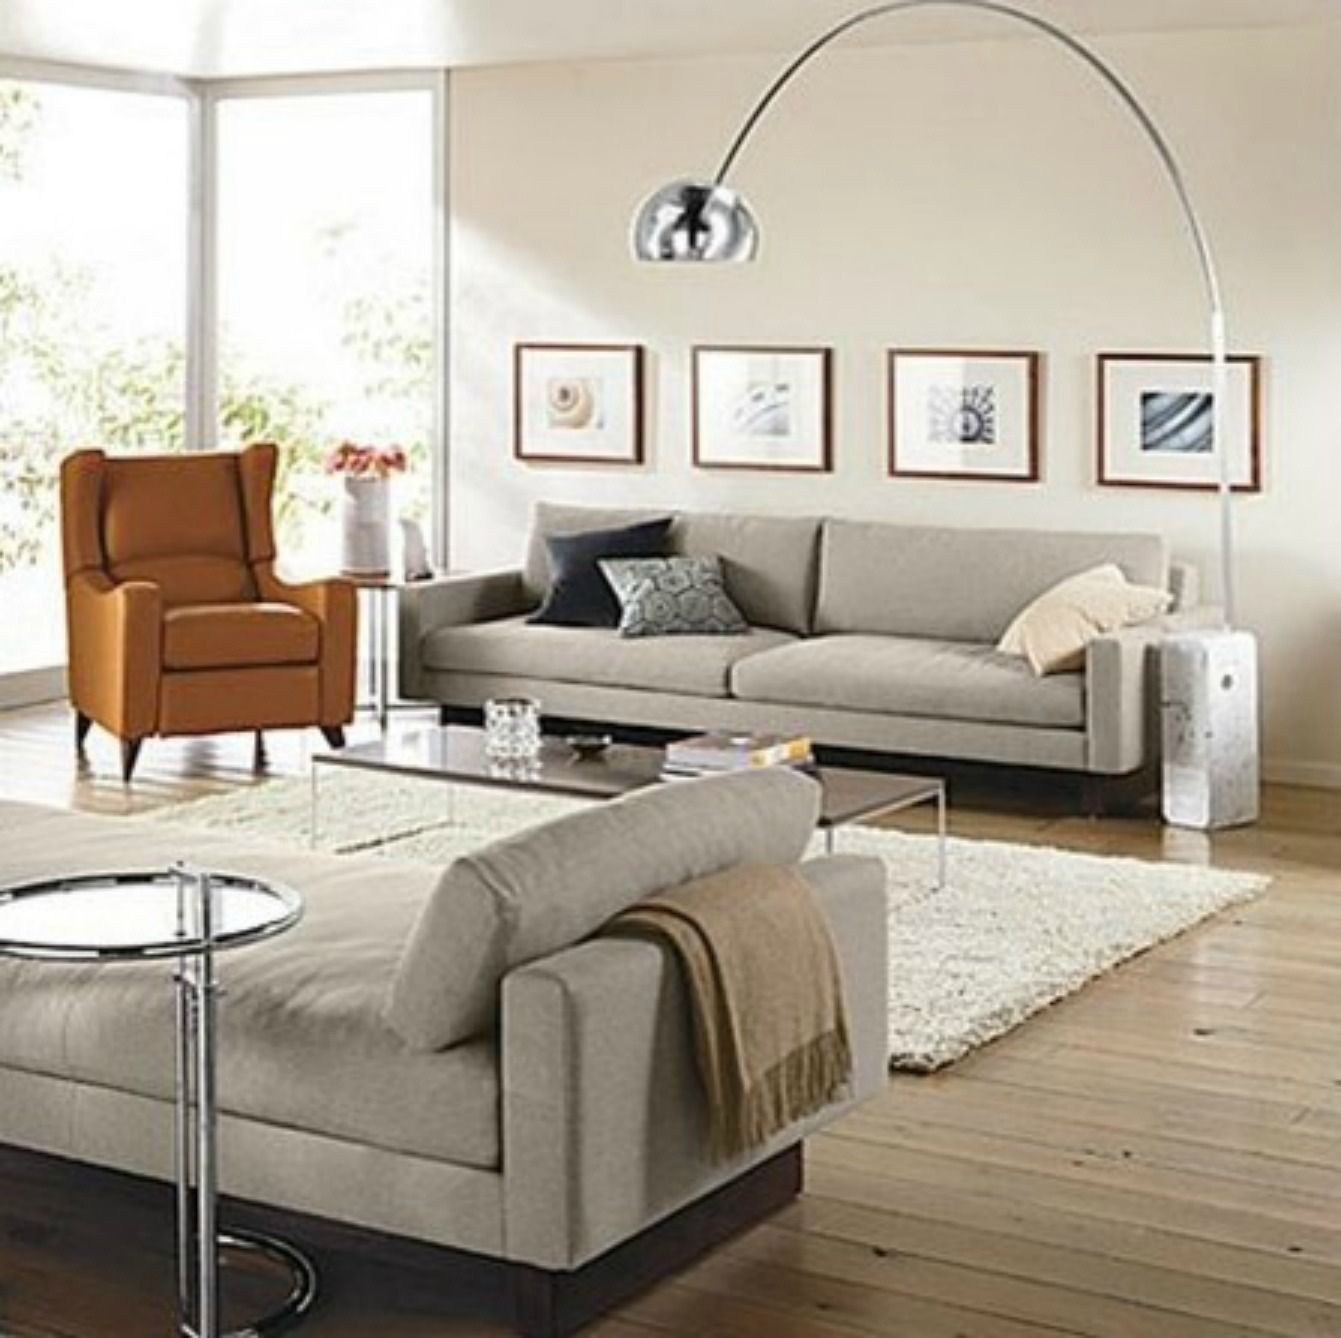 Recliners In Design Yay Or Nay Recliners Living Room